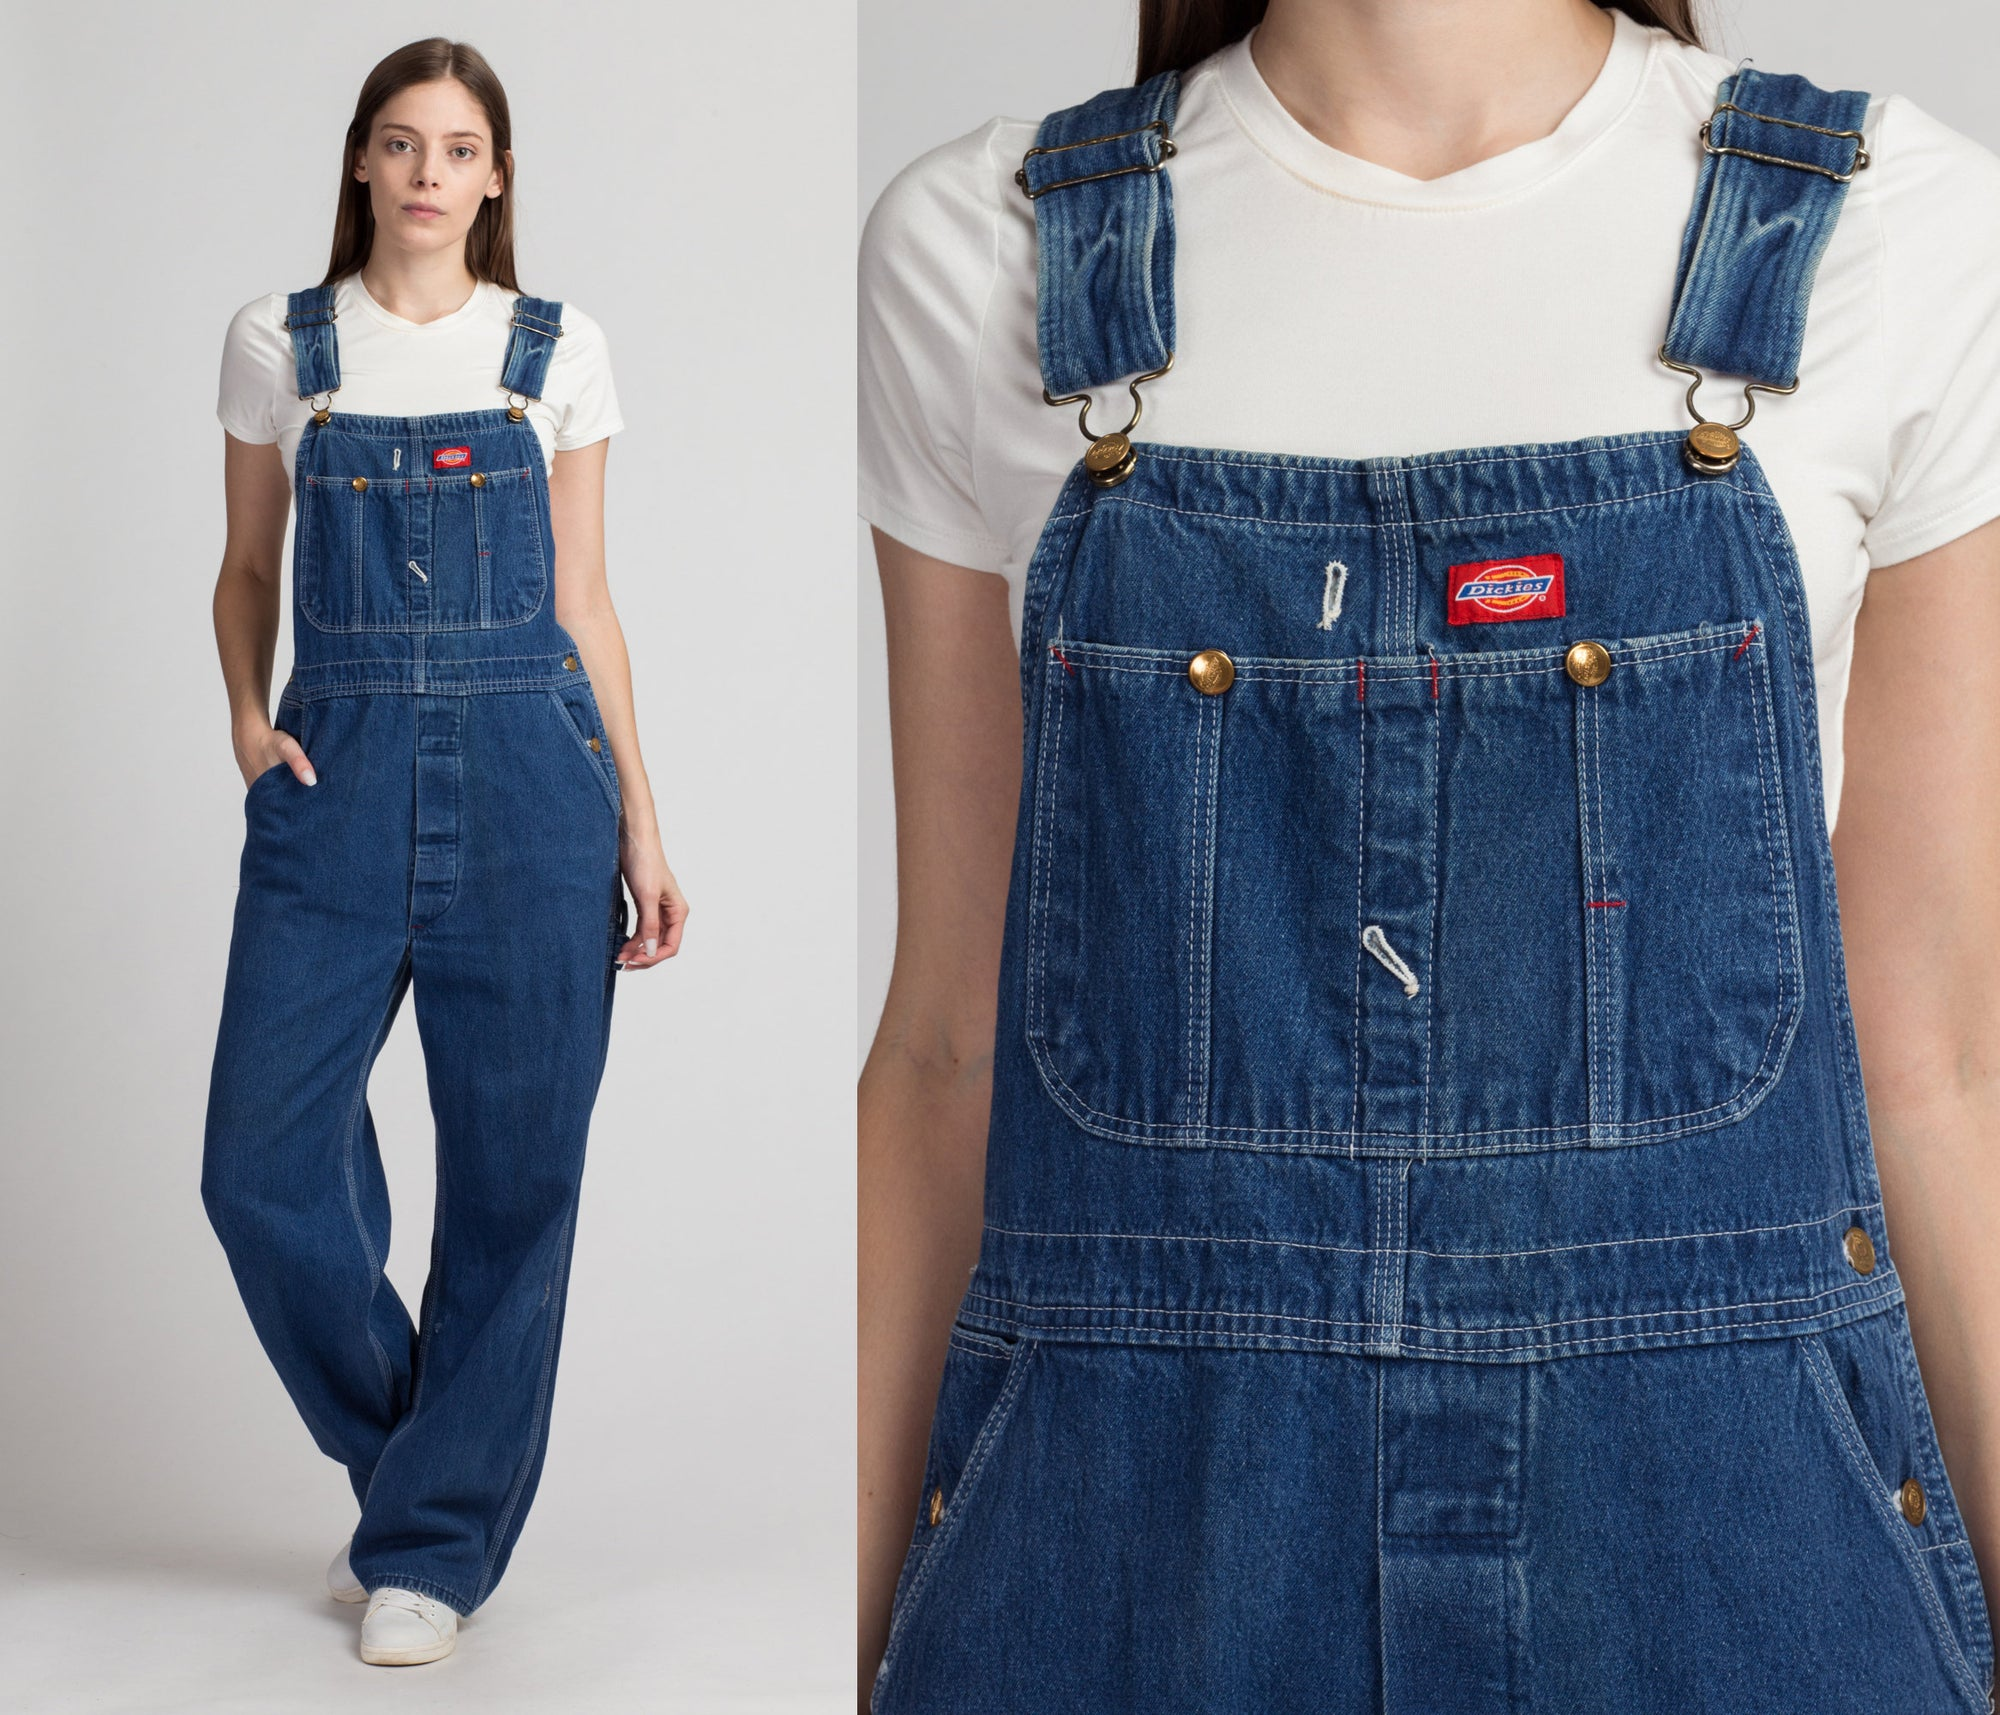 90s Dickies Dark Wash Unisex Overalls - 34x32, Medium | Vintage Denim Bib Workwear Dungarees